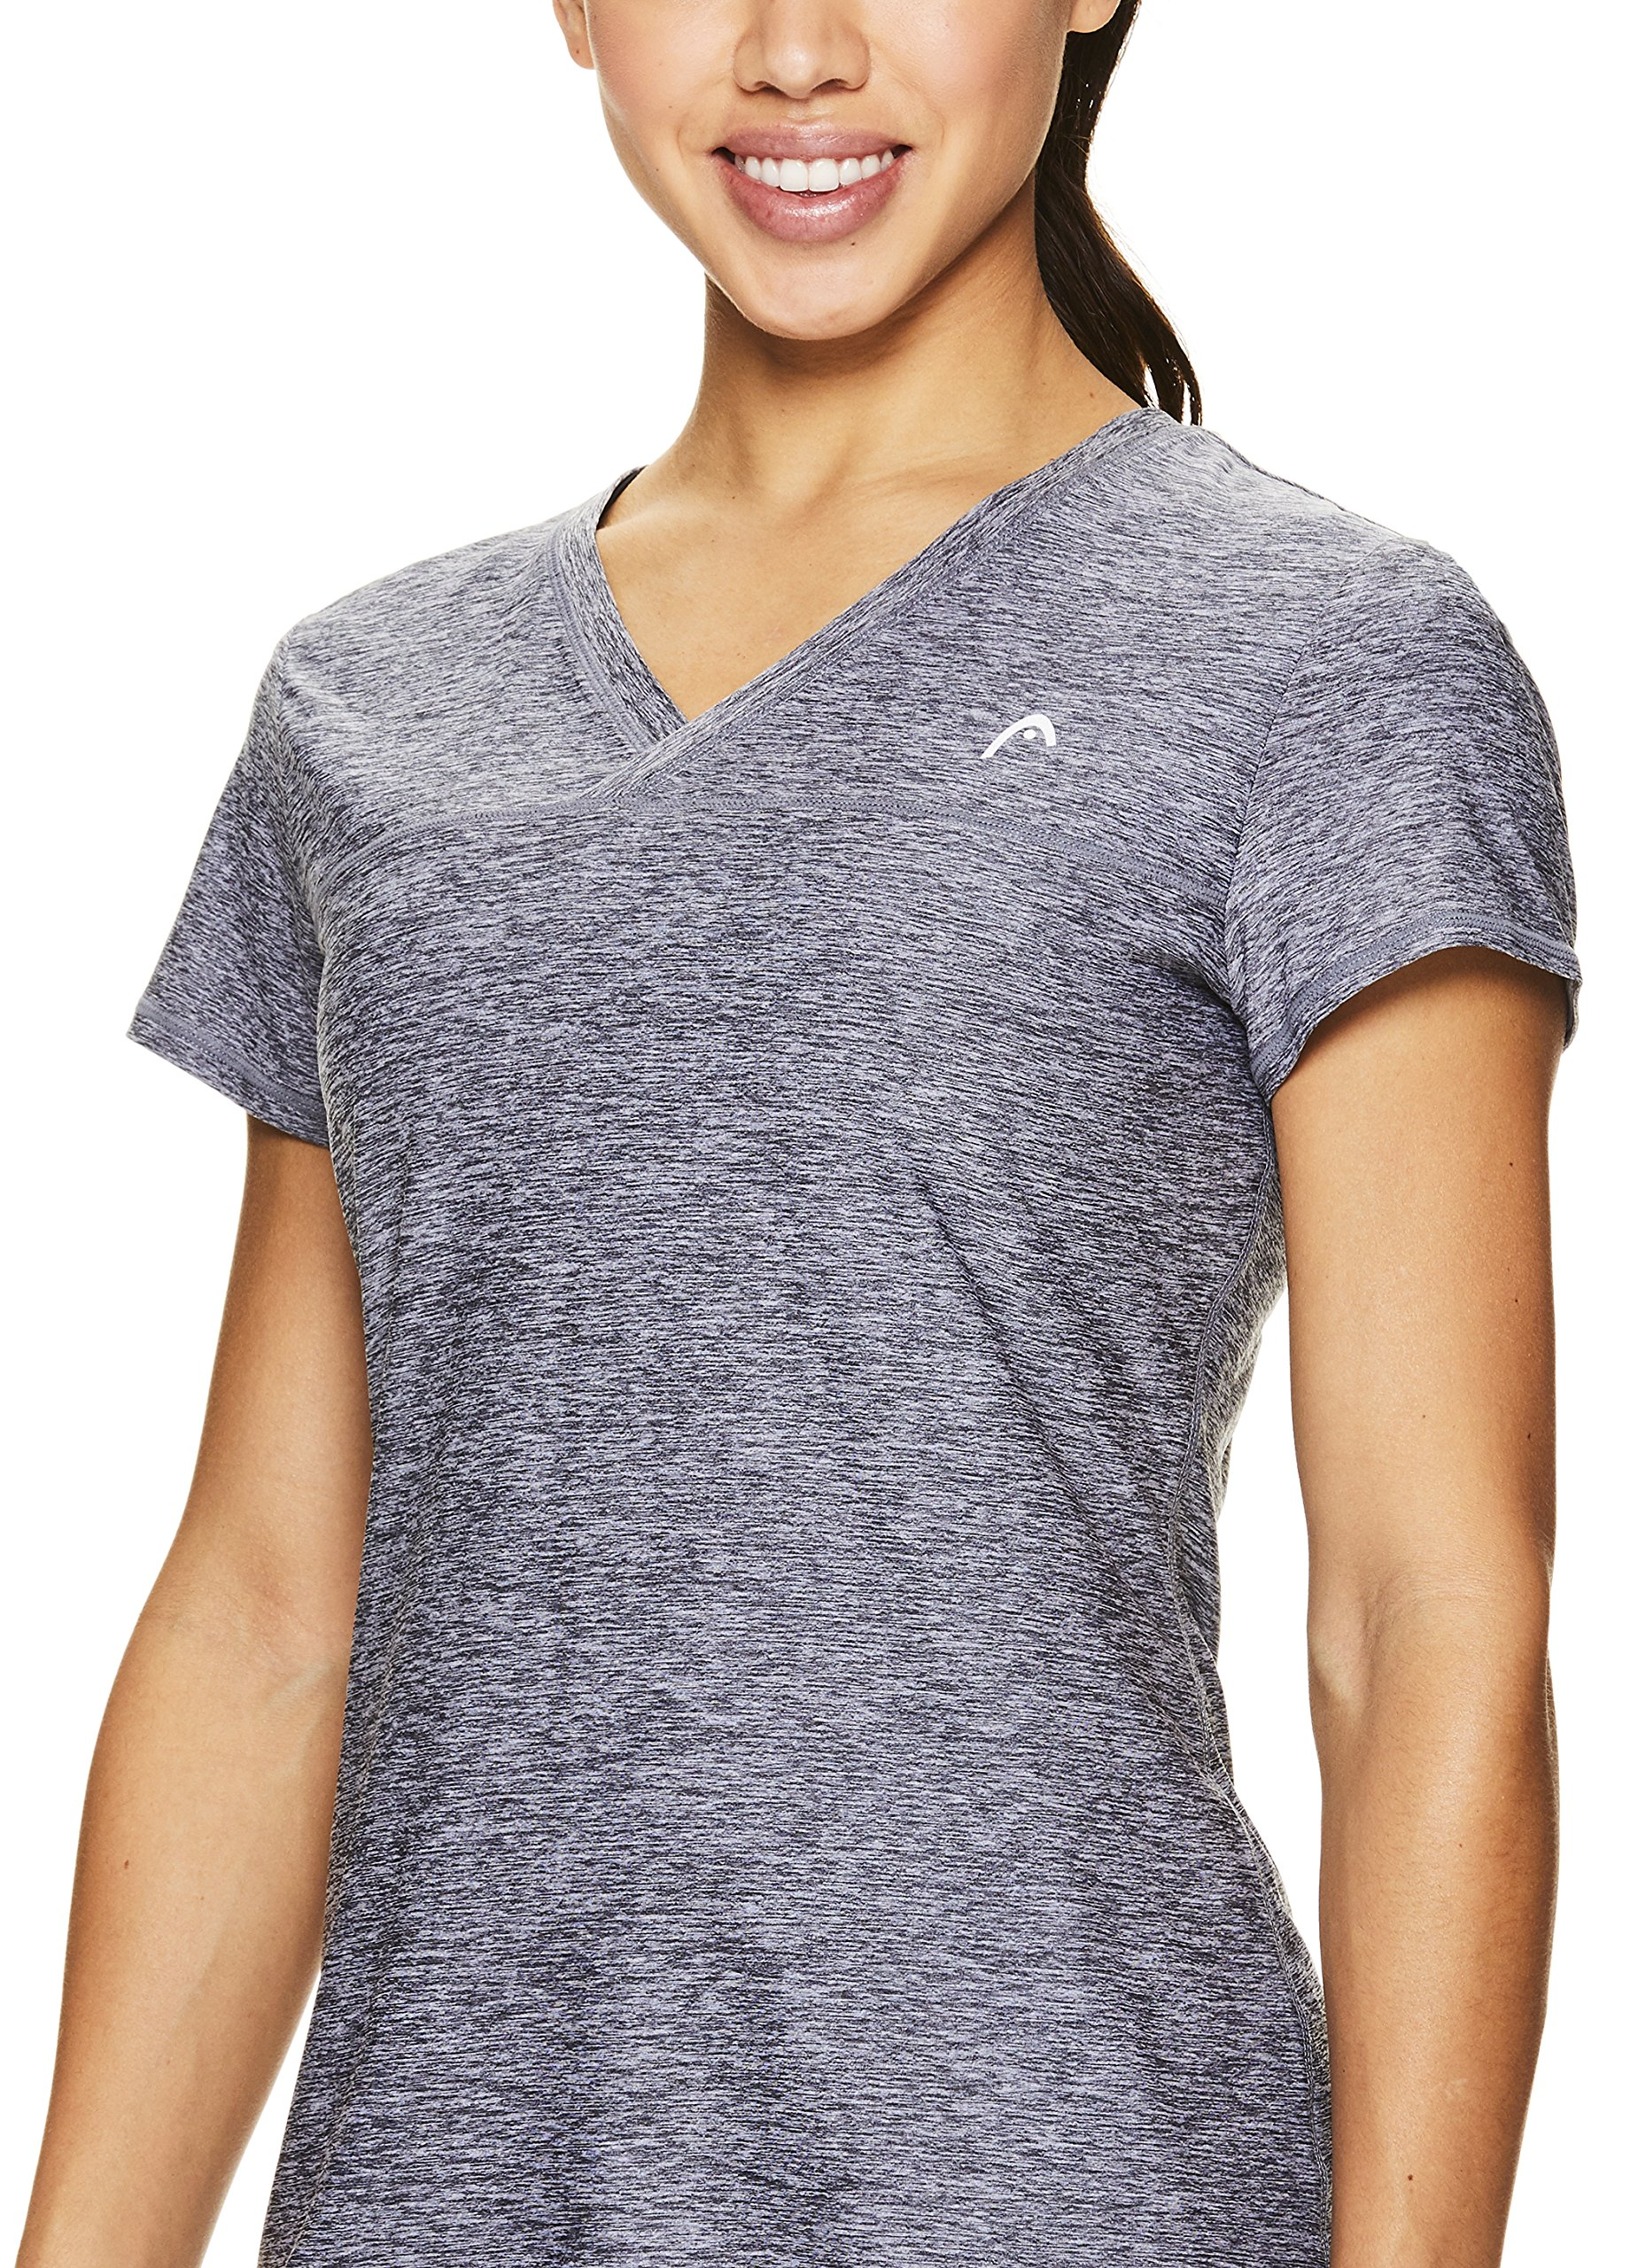 HEAD Women's High Jump Short Sleeve Workout T-Shirt - Performance V-Neck Activewear Top - Medium Grey Heather, X-Small by HEAD (Image #2)